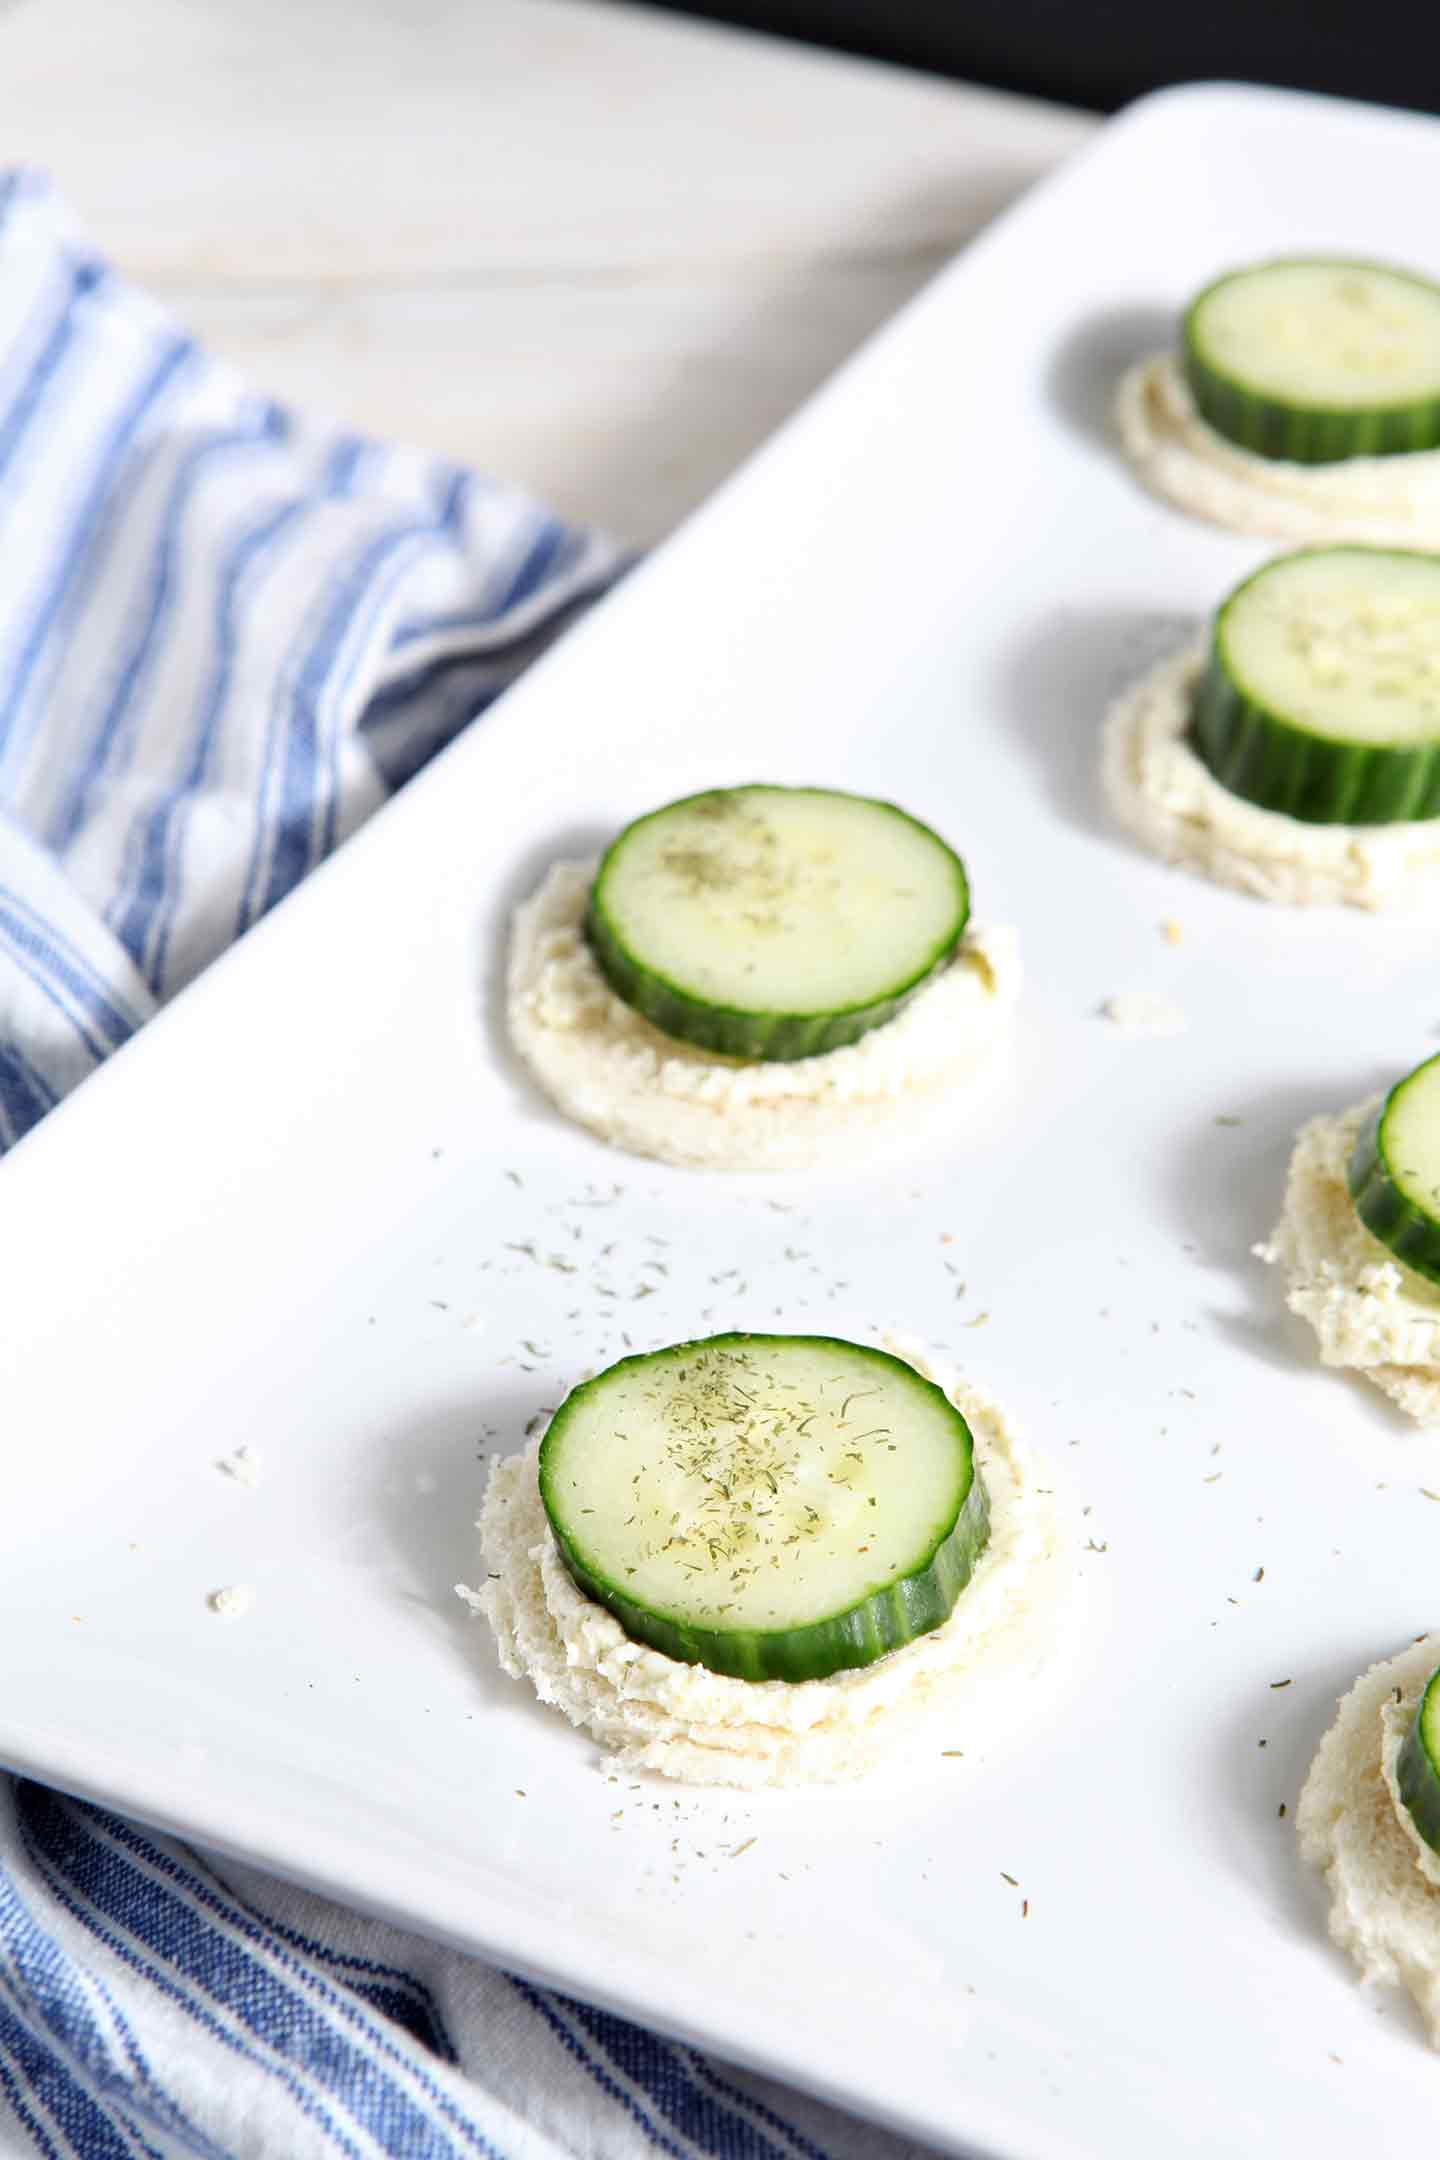 These aren't your mama's Cucumber Finger Sandwiches! These sandies are a twist on the classic baby and bridal shower finger food. Instead of the traditional mayonnaise-based spread, this recipe calls for a whipped feta and cream cheese spread, studded with dill. Cut your thinly sliced bread into the desired shape, slather with the whipped feta and cream cheese spread, top with a English cucumber slice, sprinkle with dill, and you're good to go!